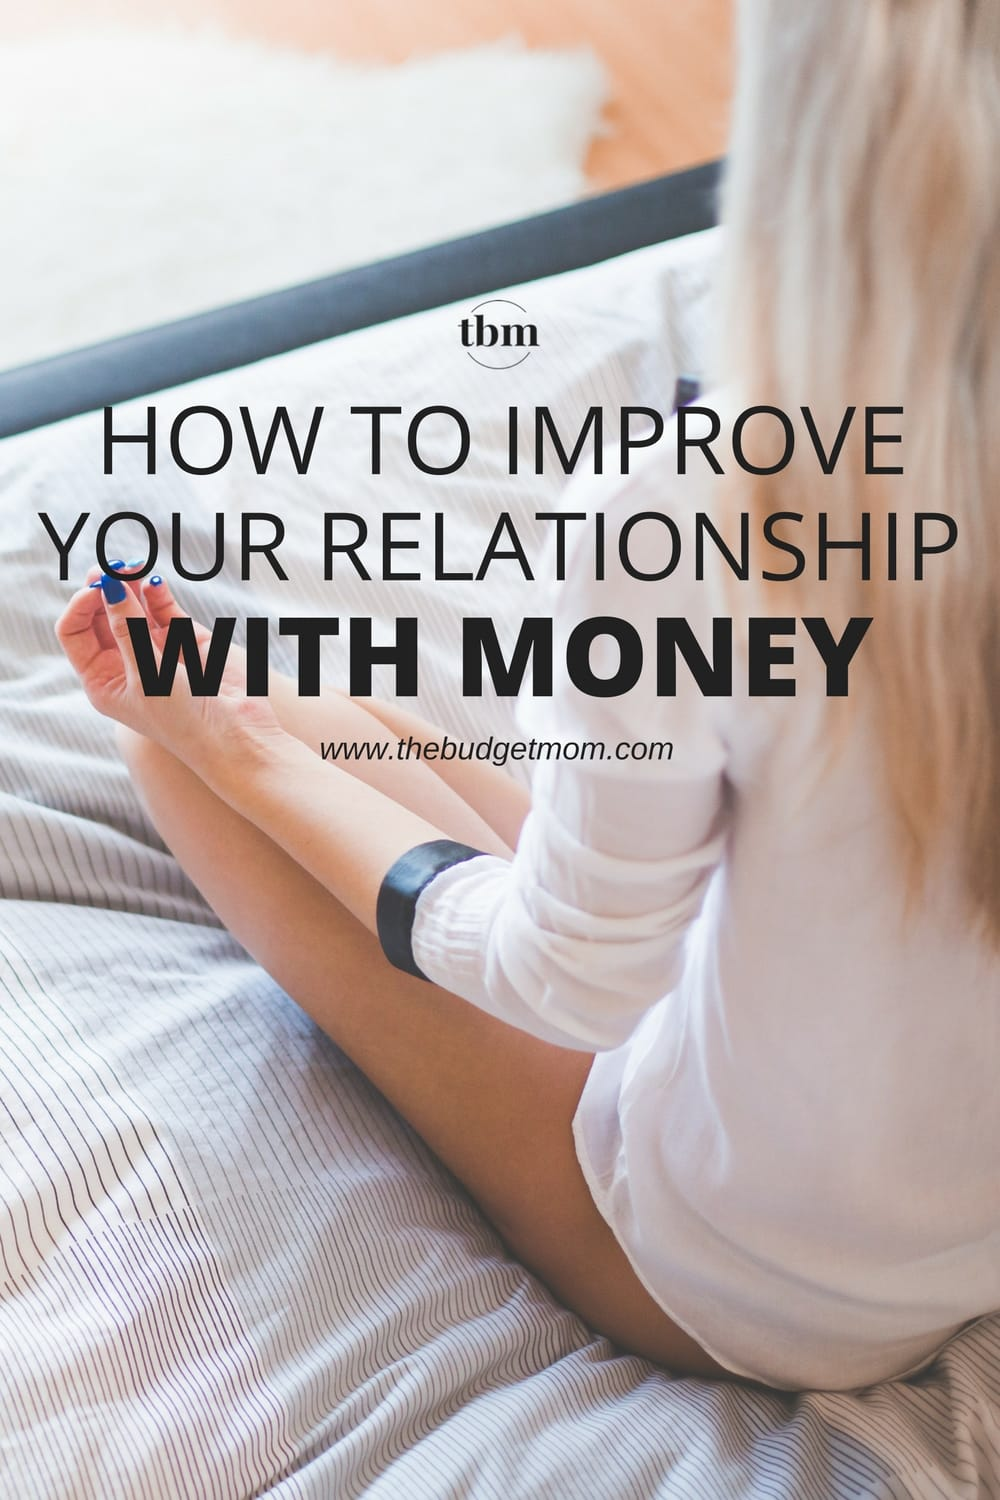 In the past, my relationship with my money sucked. Here are some ways I improved it and why it also helped me find financial success. Click to read the full article today!